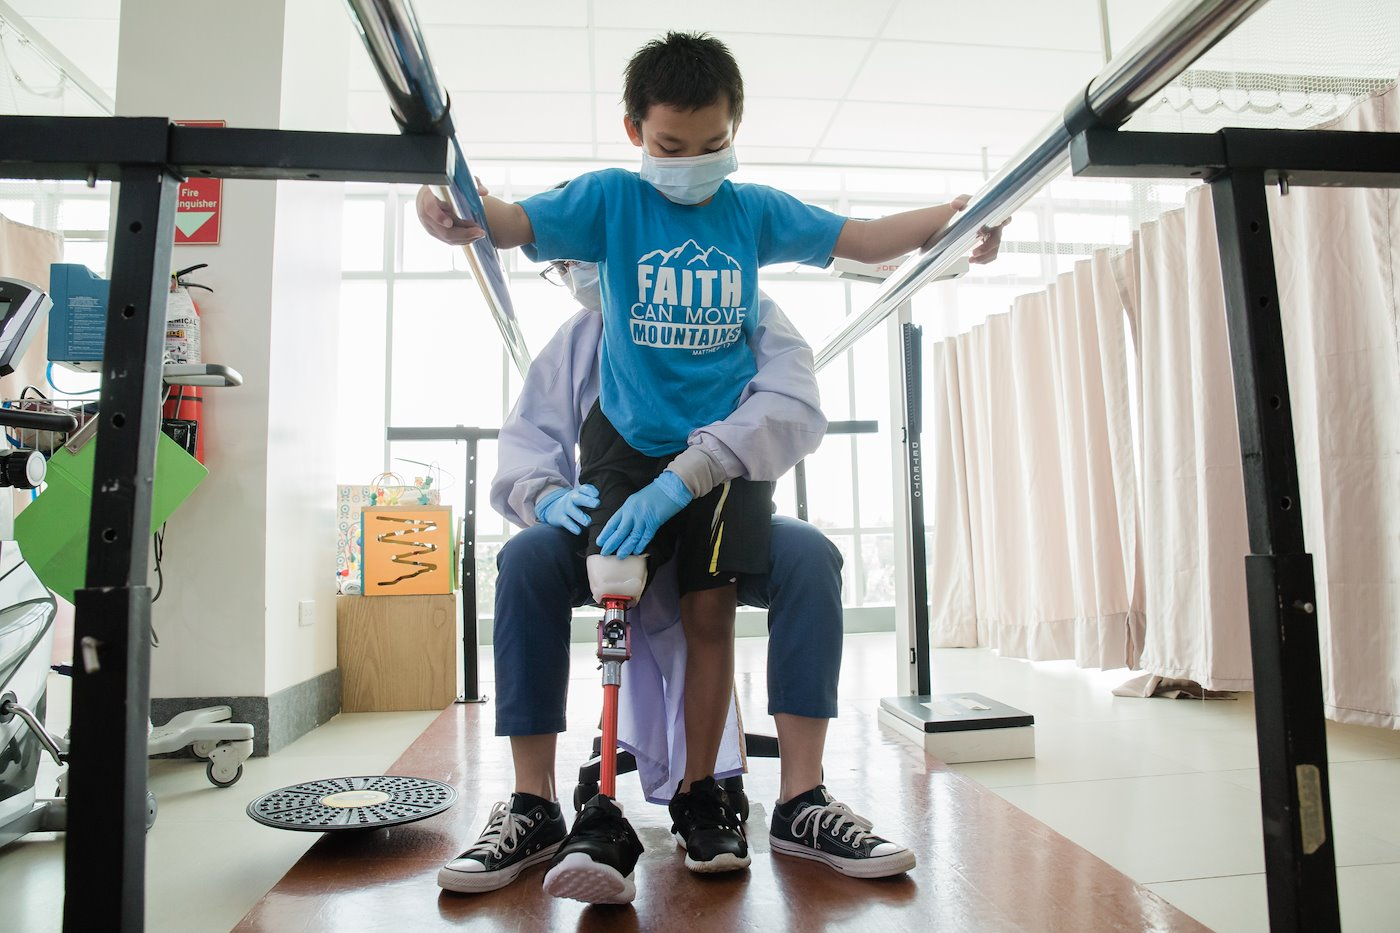 Wilson practices how to walk with his new prosthetic leg.